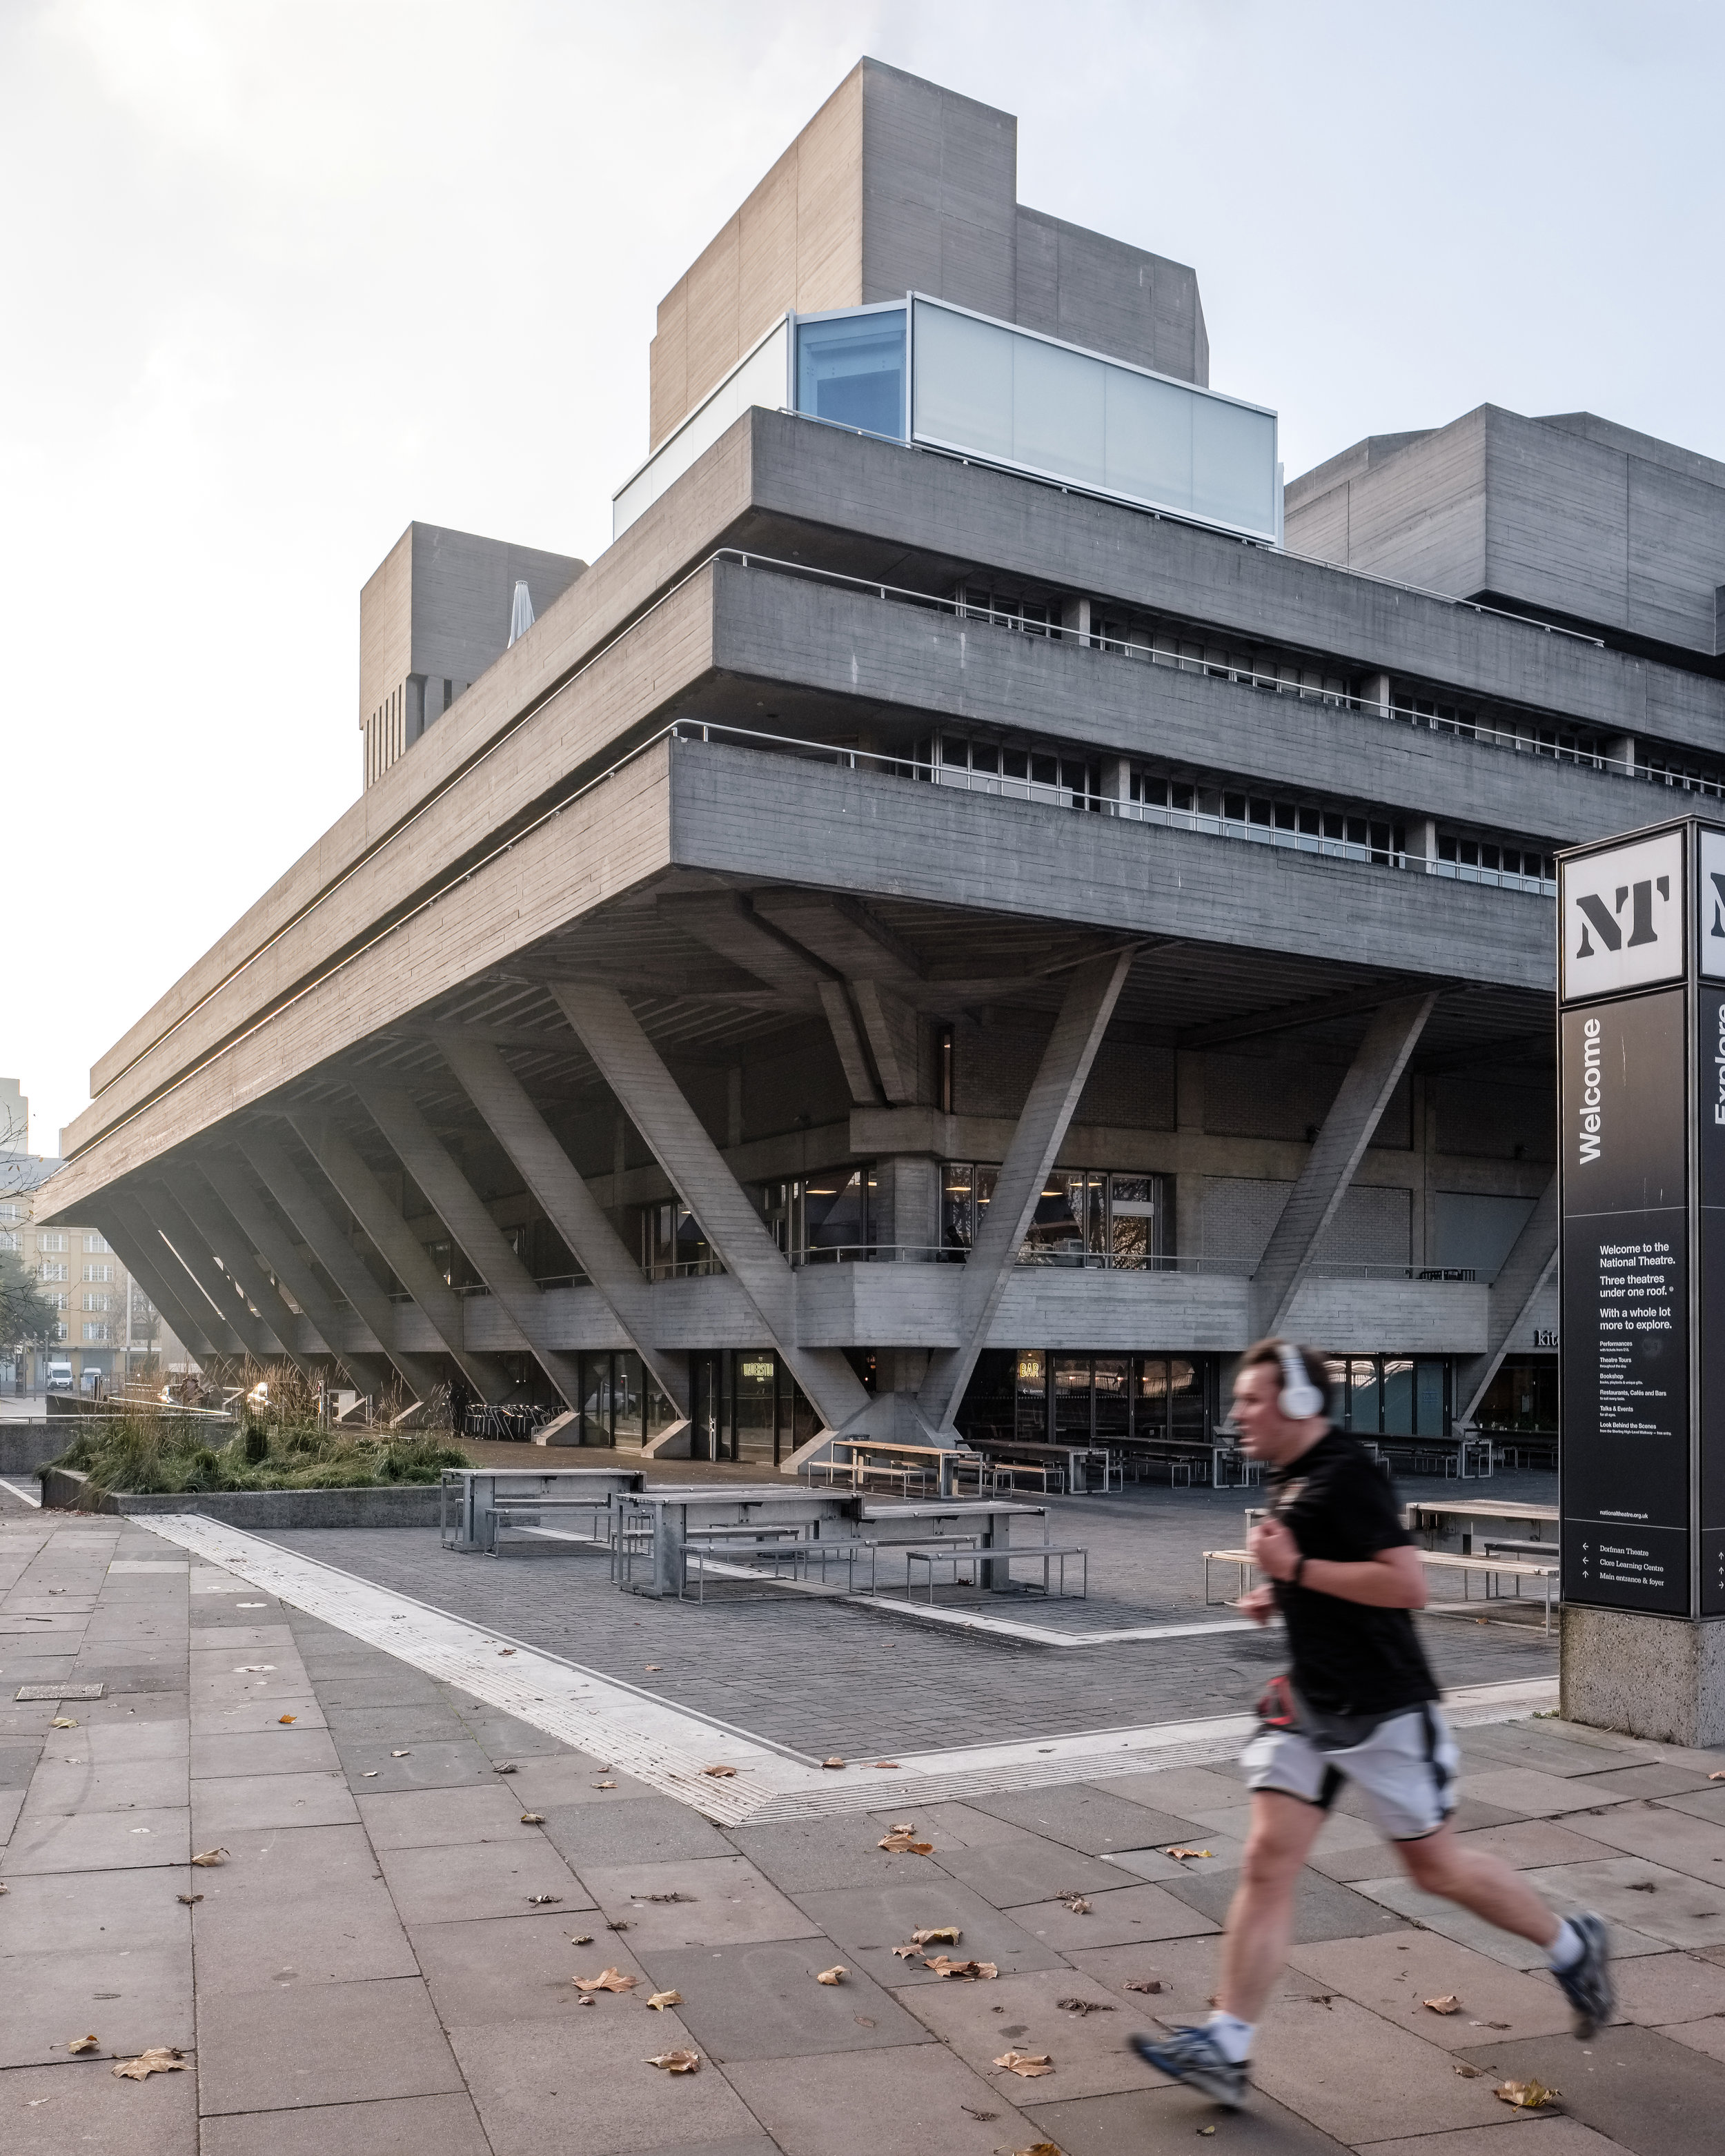 Fred+Howarth+Photography_National+Theater+Deck_04.jpg